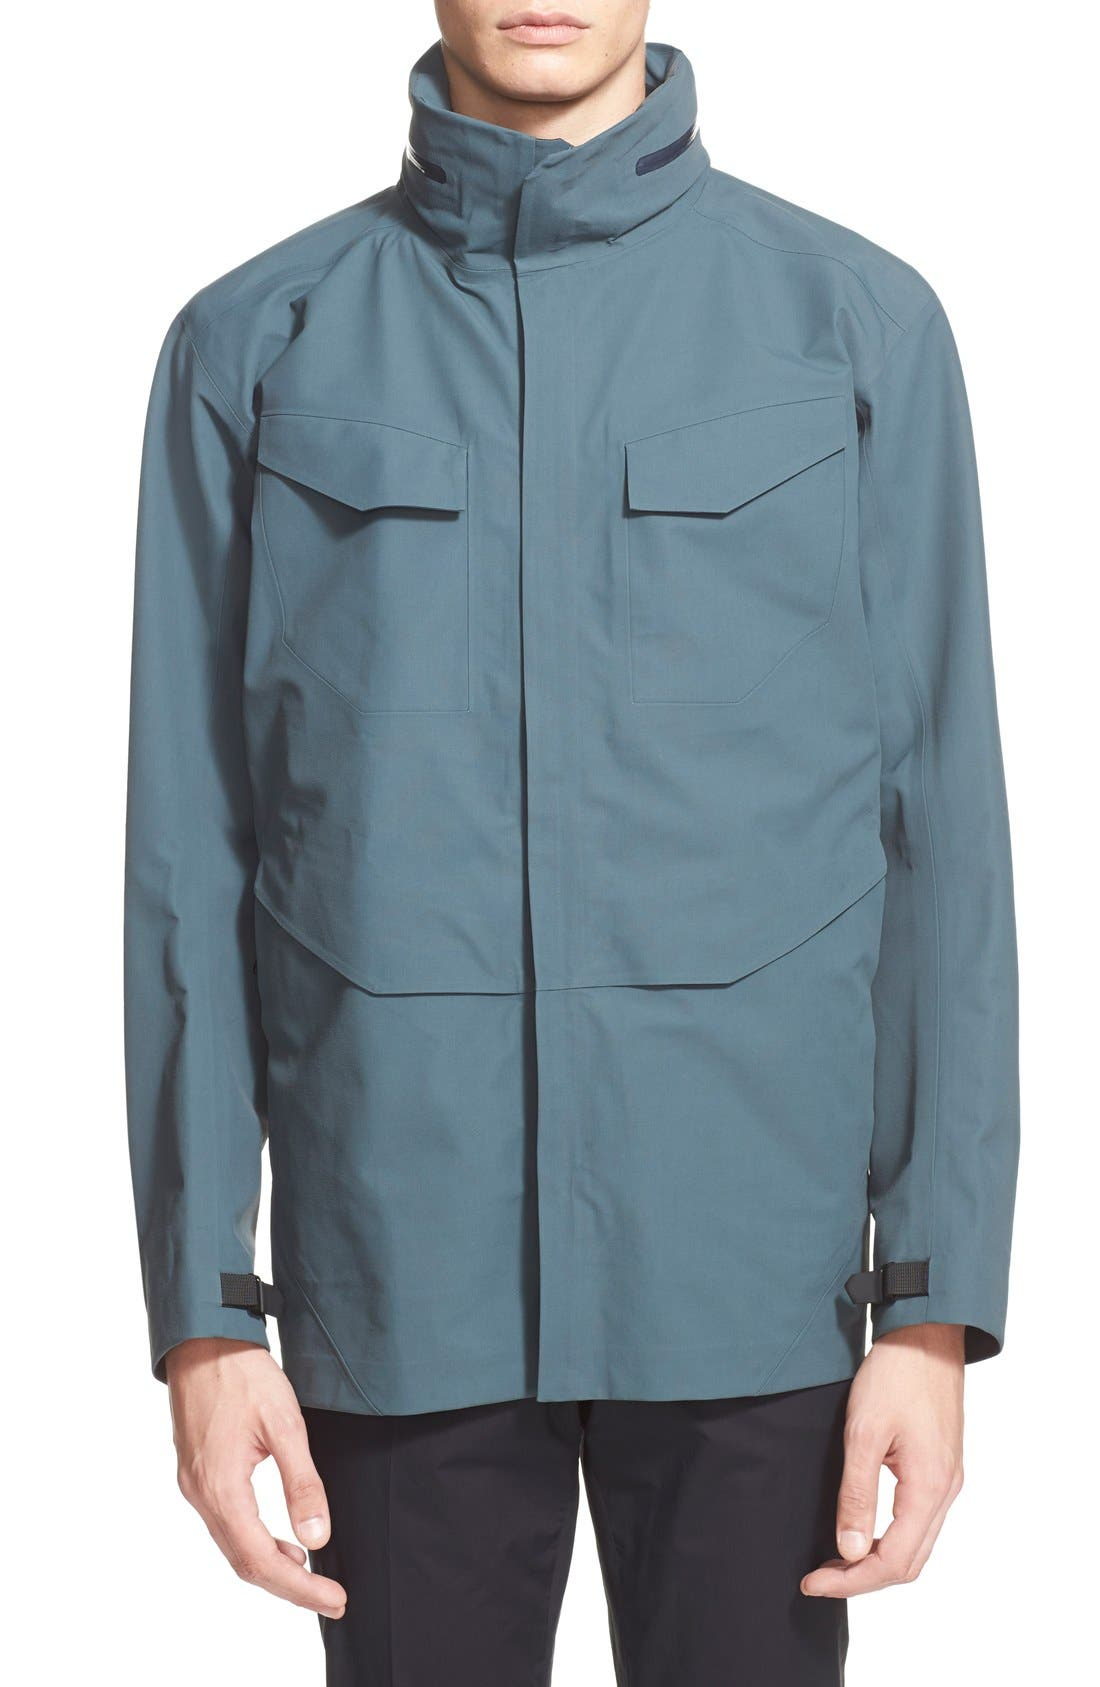 ARC'TERYX VEILANCE Waterproof Field Jacket, Main, color, 400